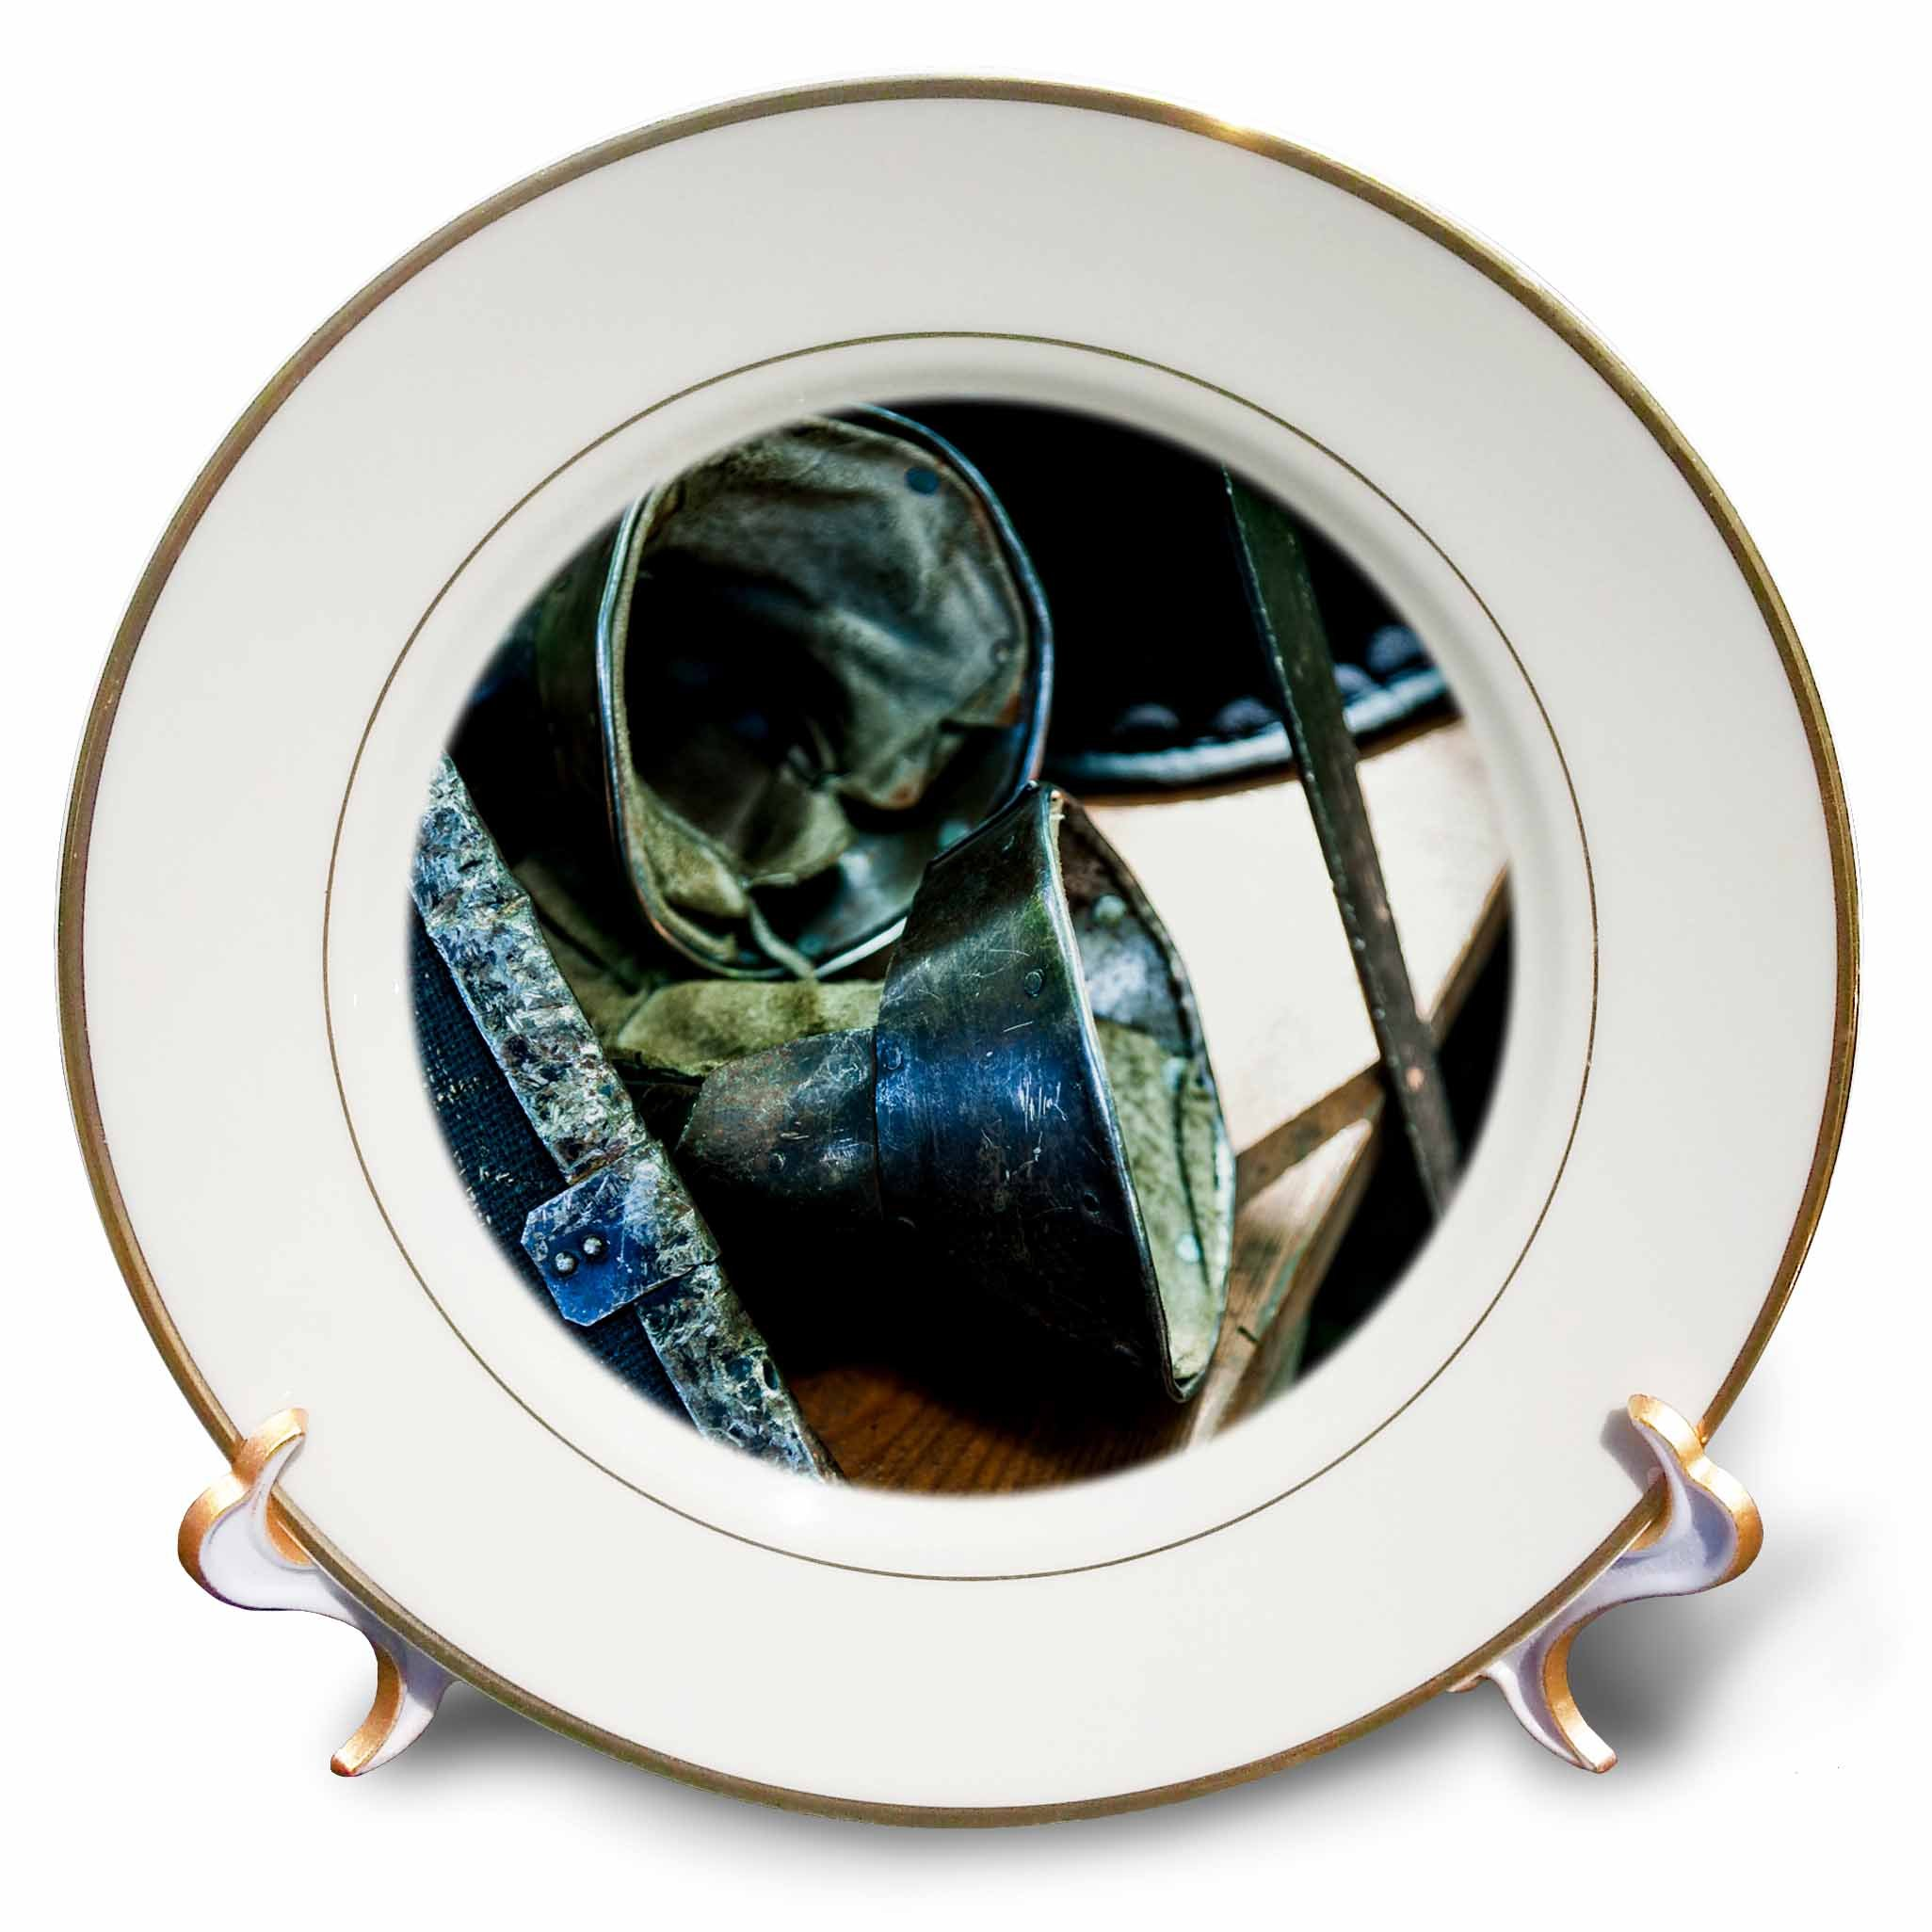 3dRose Alexis Photography - Objects Armor - Medieval shield, combat metal gloves, sword on a wooden bench - 8 inch Porcelain Plate (cp_271937_1)